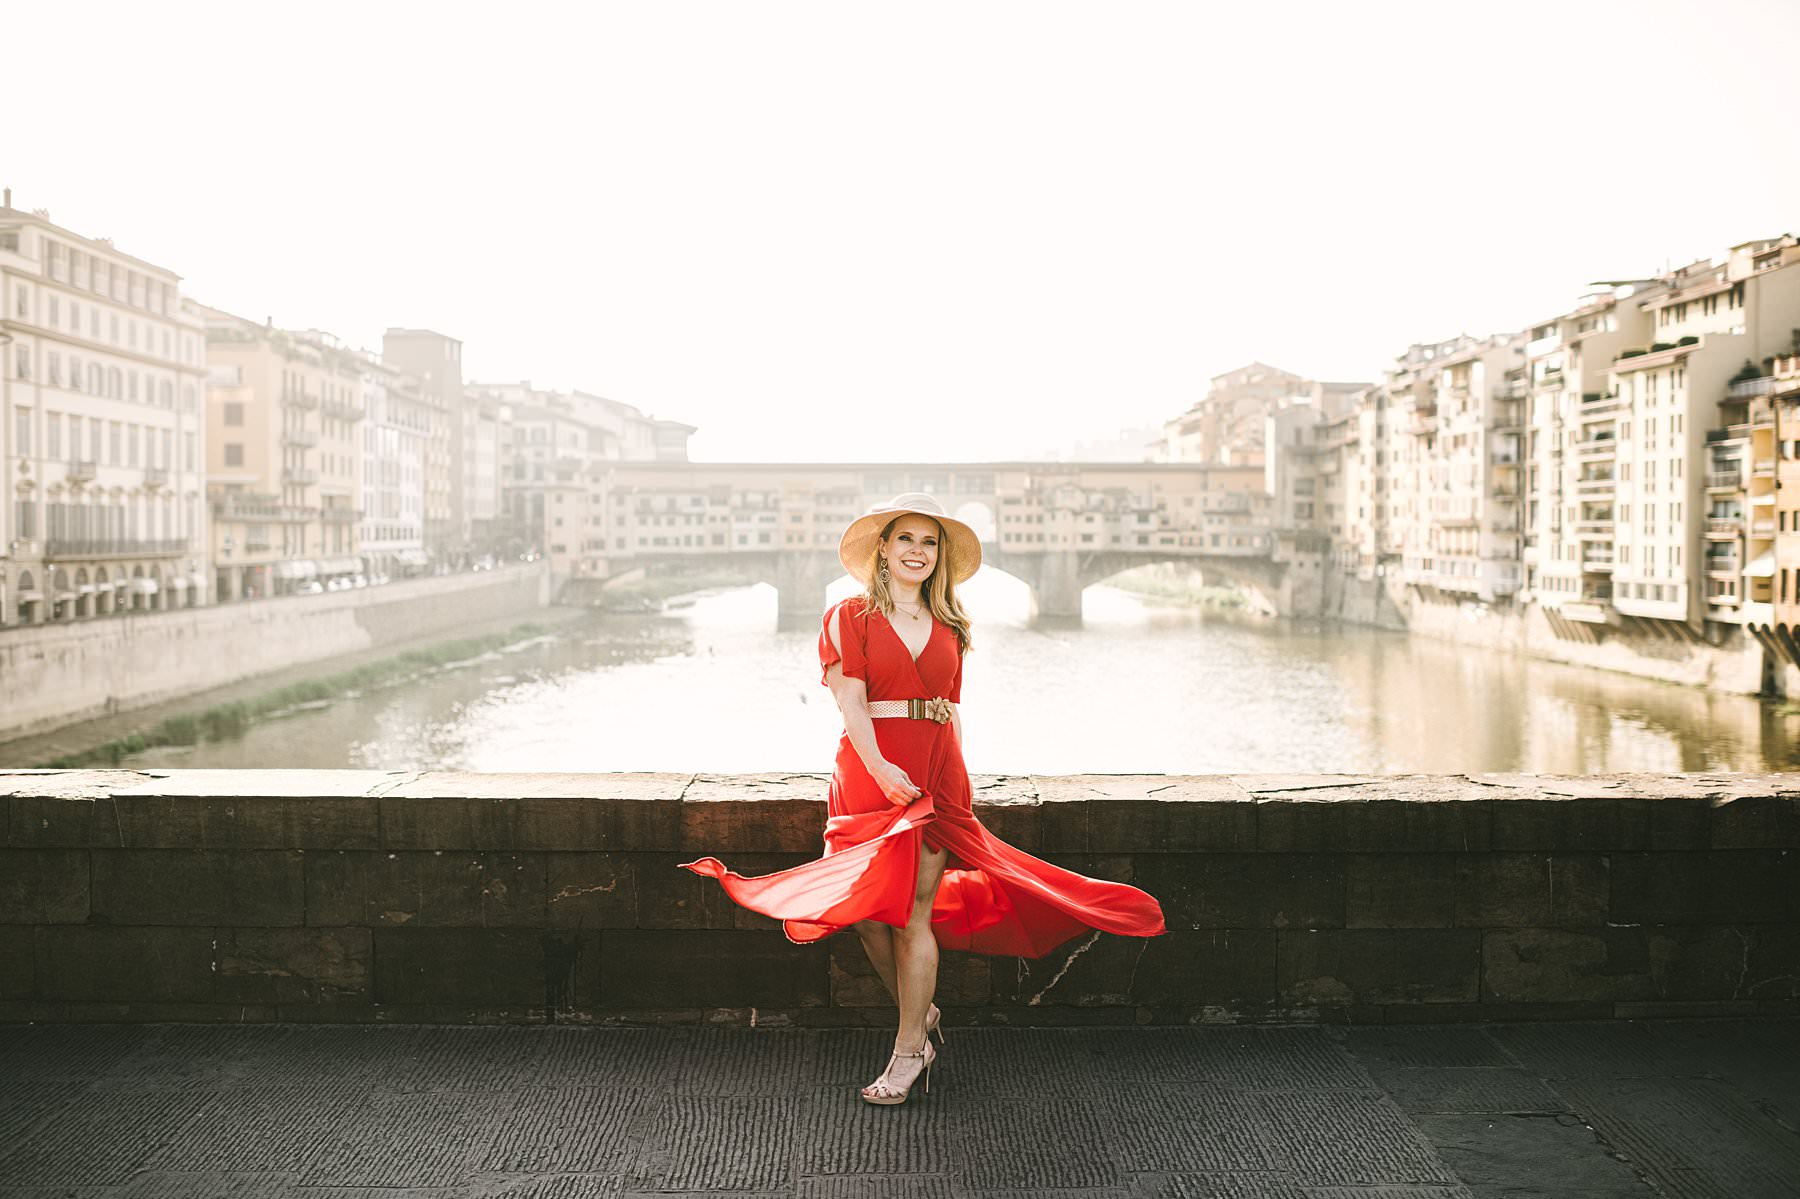 Anniversary photos in Florence, soft as sunrise, red as passion. A beautiful frame, a delicate light, a bright red dress, a milestone to celebrate: these were the ingredients of Anisa and Kevin's anniversary photos, taken in Florence at sunrise. We strolled the streets of the city, during a session that lasted almost three hours and touched all of the most iconic spots: from Piazza della Signoria to the Uffizi Gallery, from Palazzo Gondi to Piazza S. Firenze, from Ponte Vecchio to Piazzale Michelangelo. The latter is a truly enchanted place from which you can enjoy a breathtaking view of the city: the most wonderful photo setting anyone could ask for